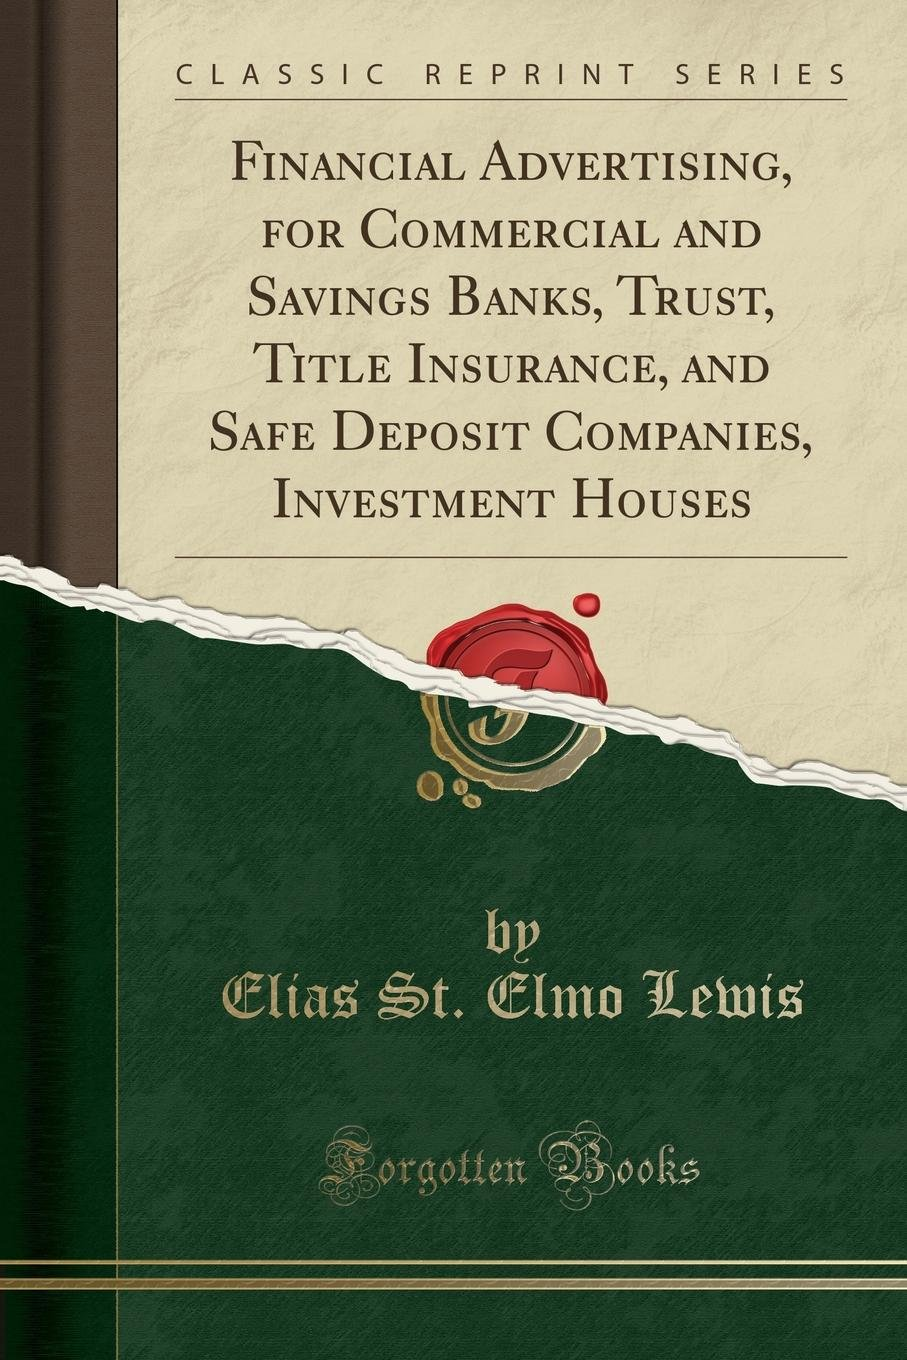 Download Financial Advertising, for Commercial and Savings Banks, Trust, Title Insurance, and Safe Deposit Companies, Investment Houses (Classic Reprint) PDF